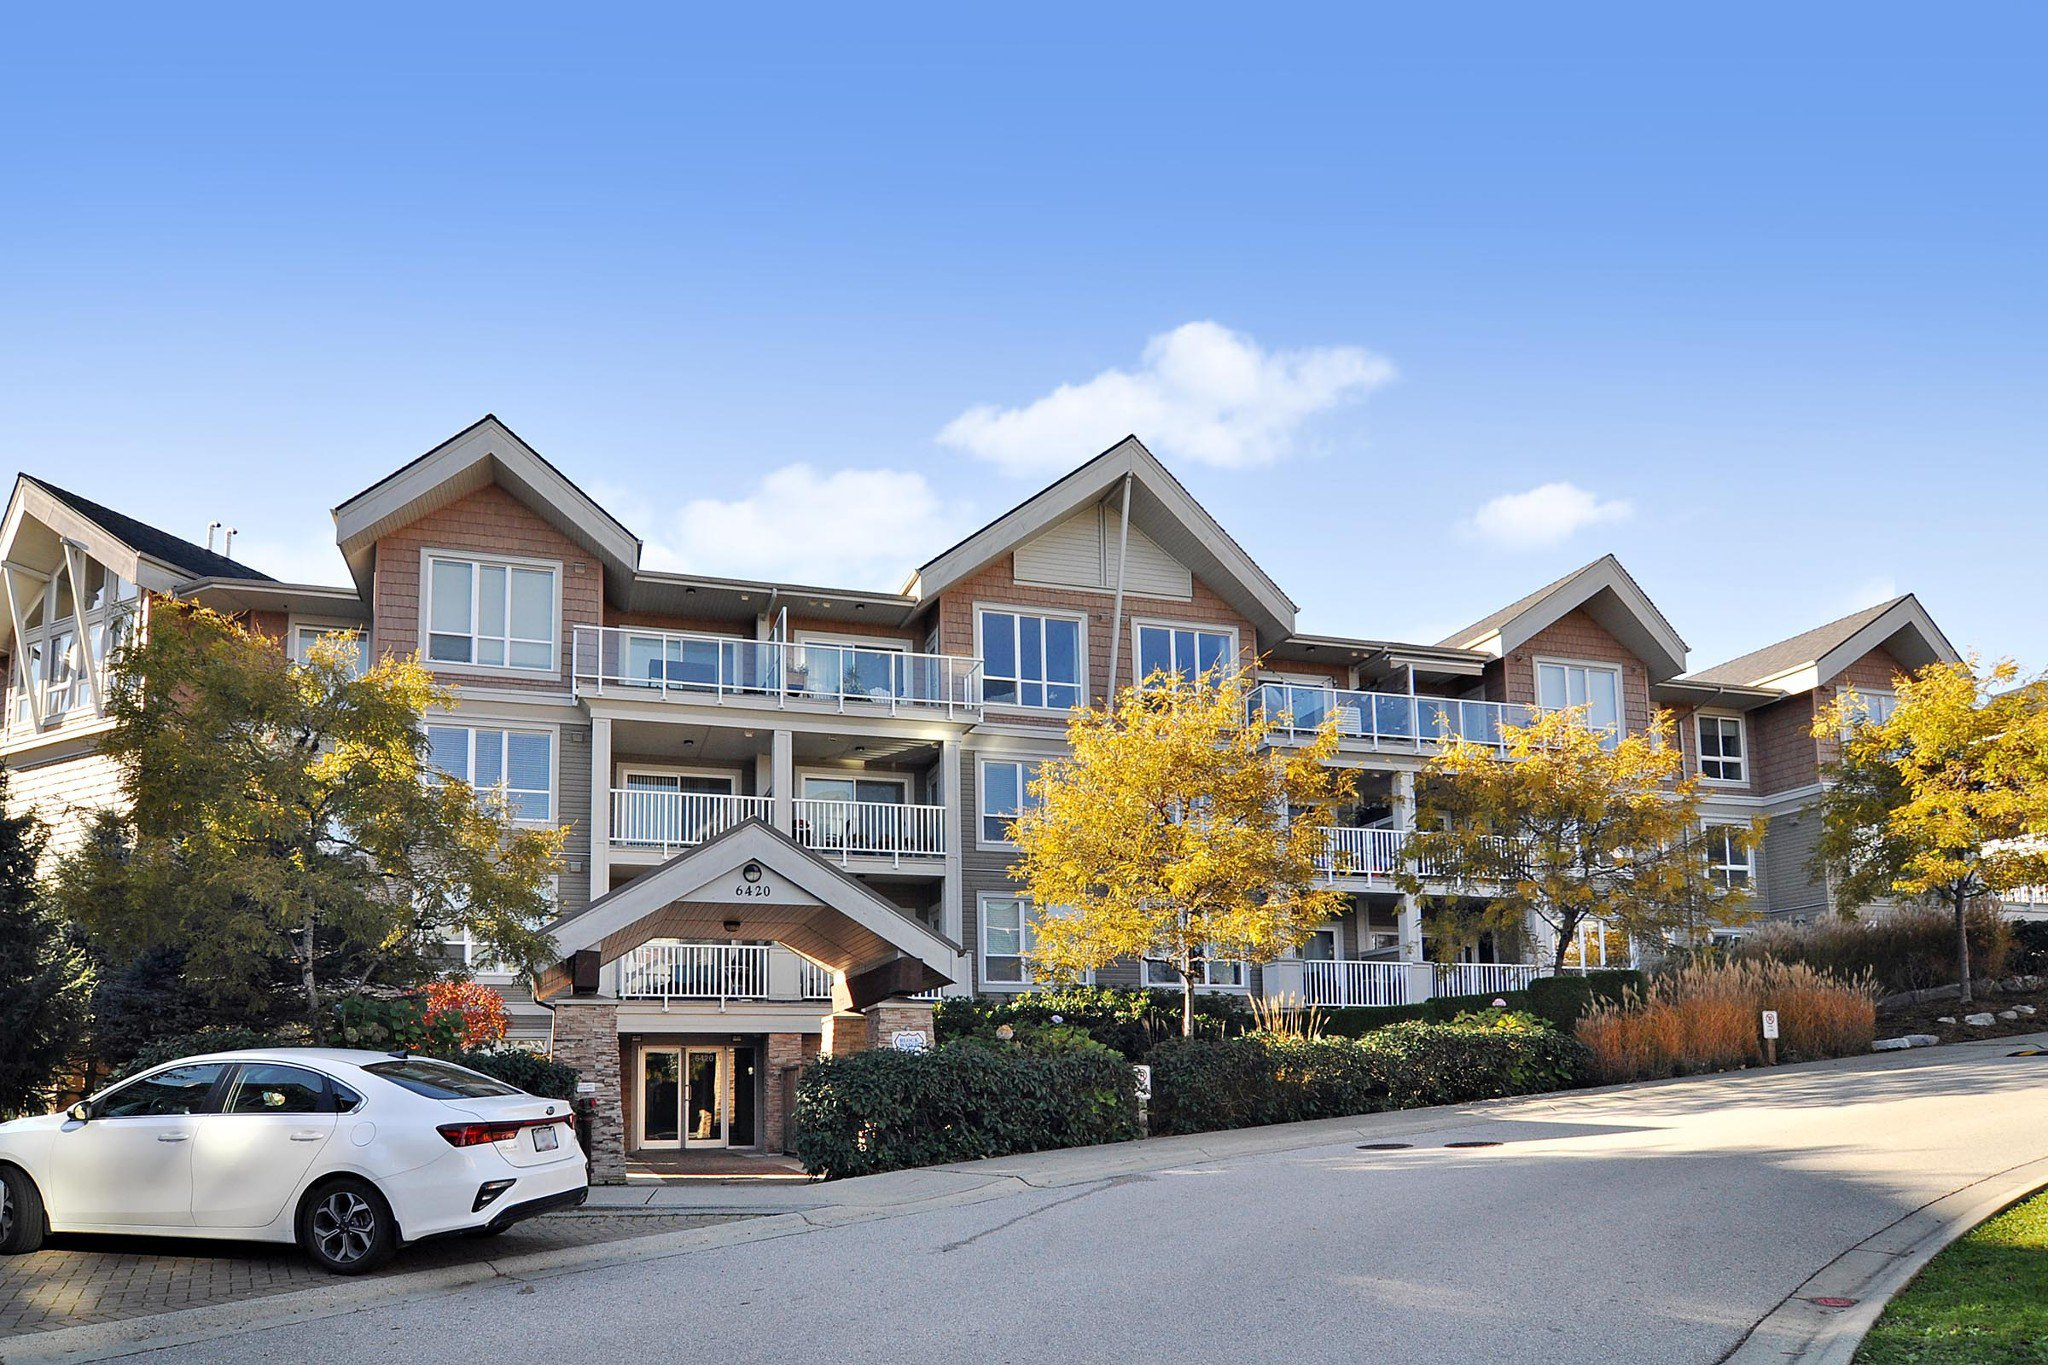 """Main Photo: 103 6420 194 Street in Surrey: Cloverdale BC Condo for sale in """"WATERSTONE"""" (Cloverdale)  : MLS®# R2508915"""